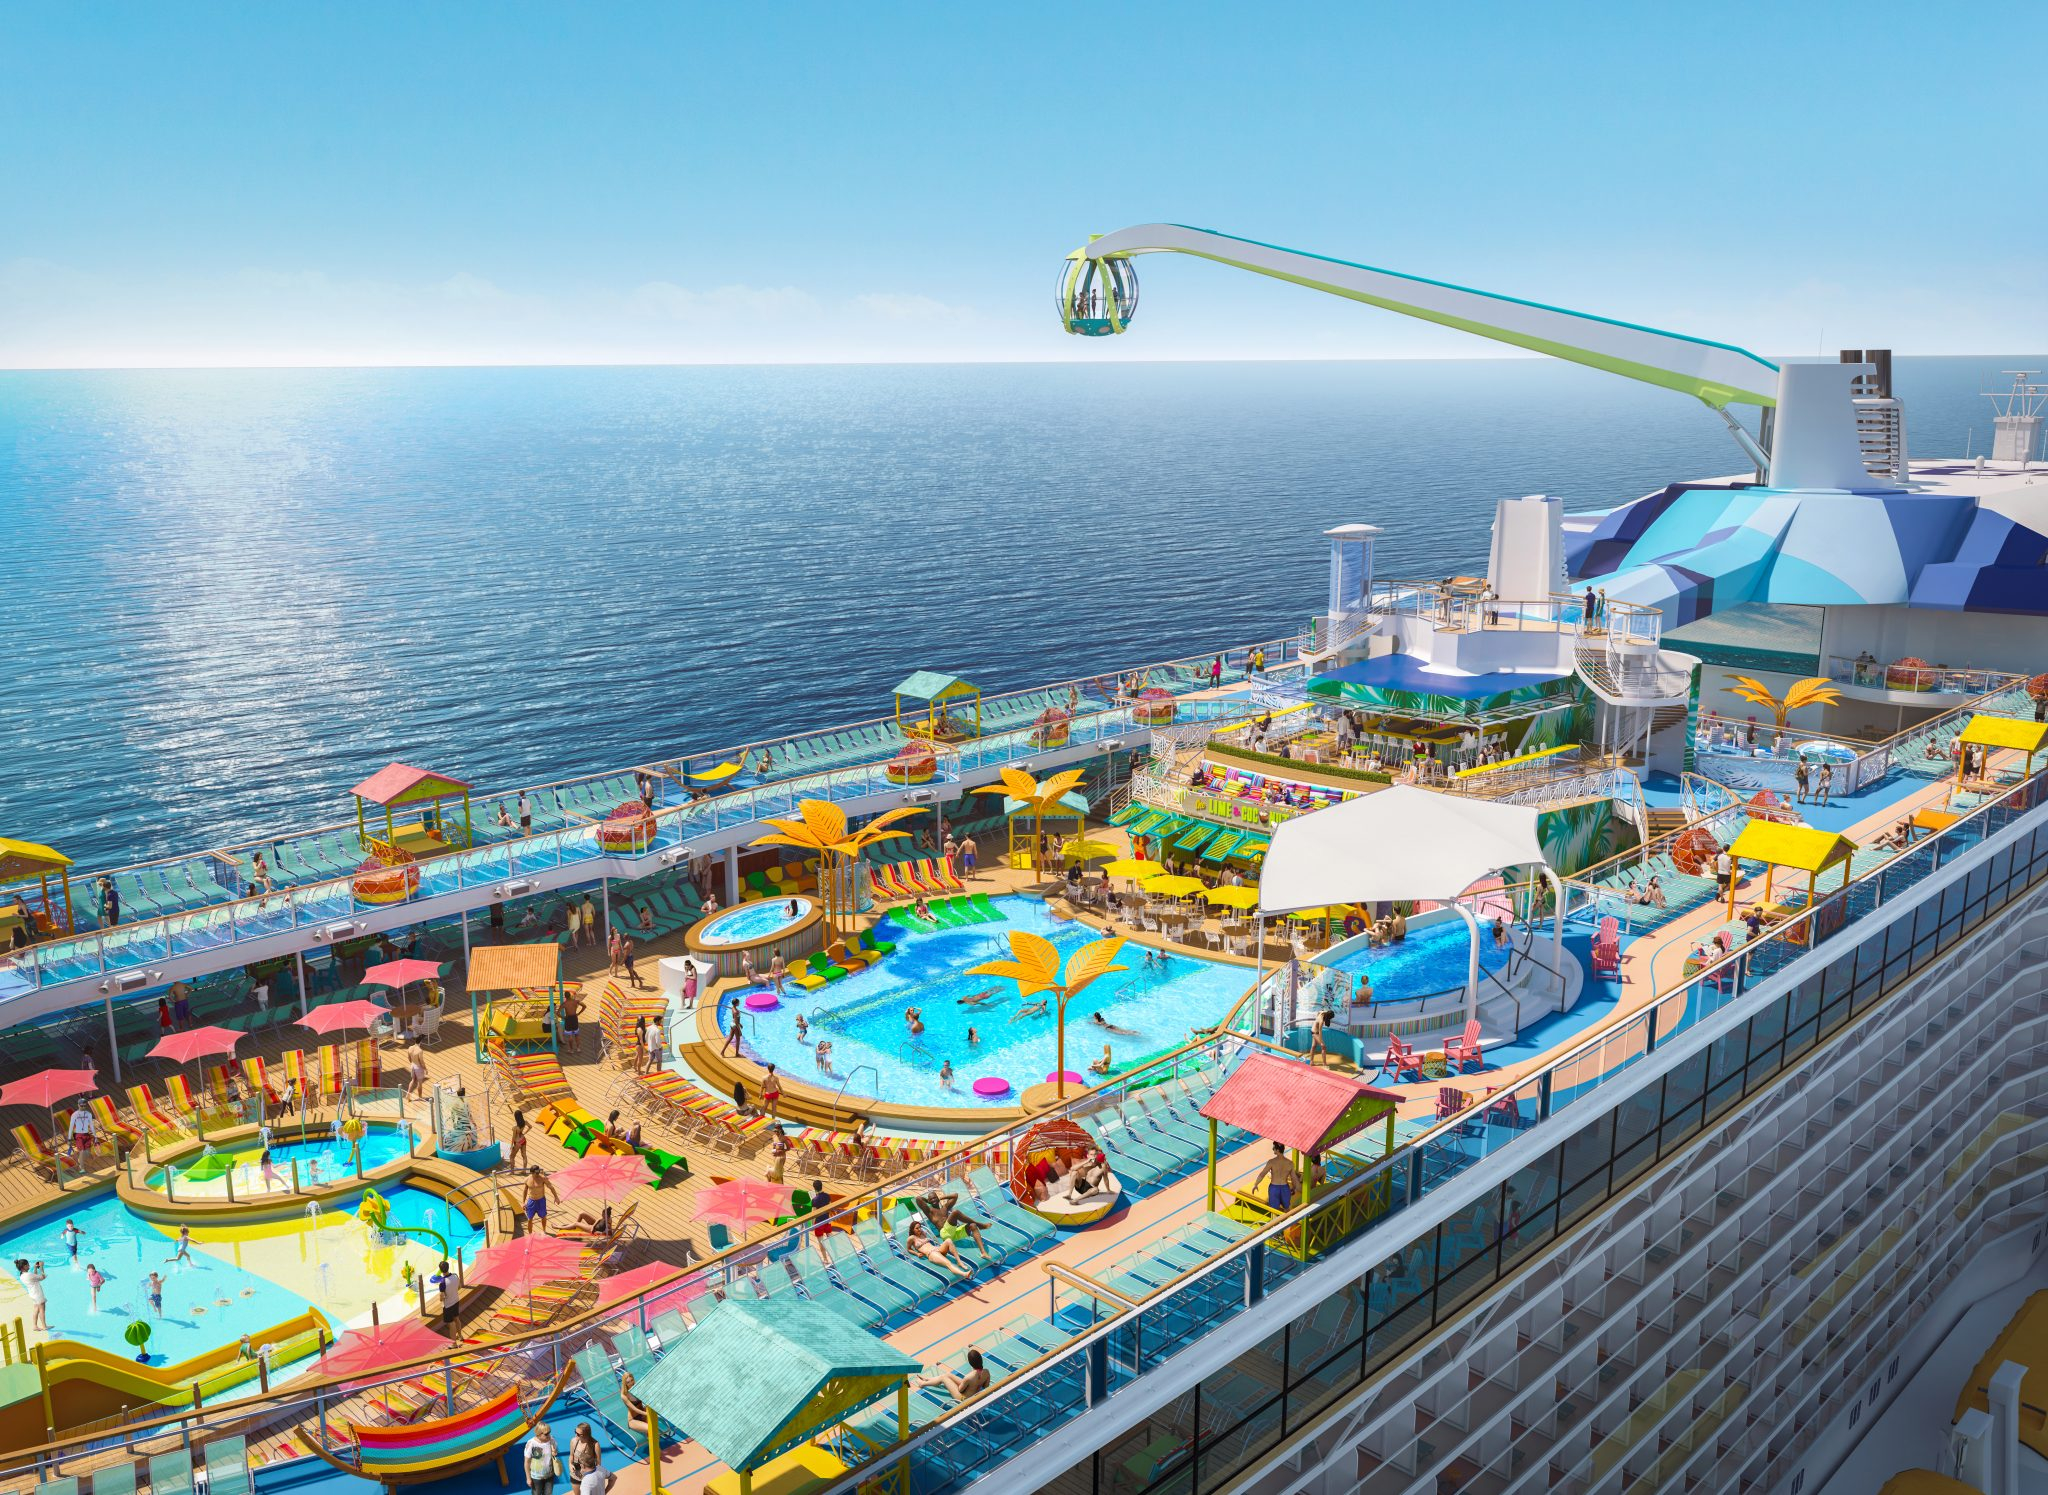 New Details on Odyssey of the Seas